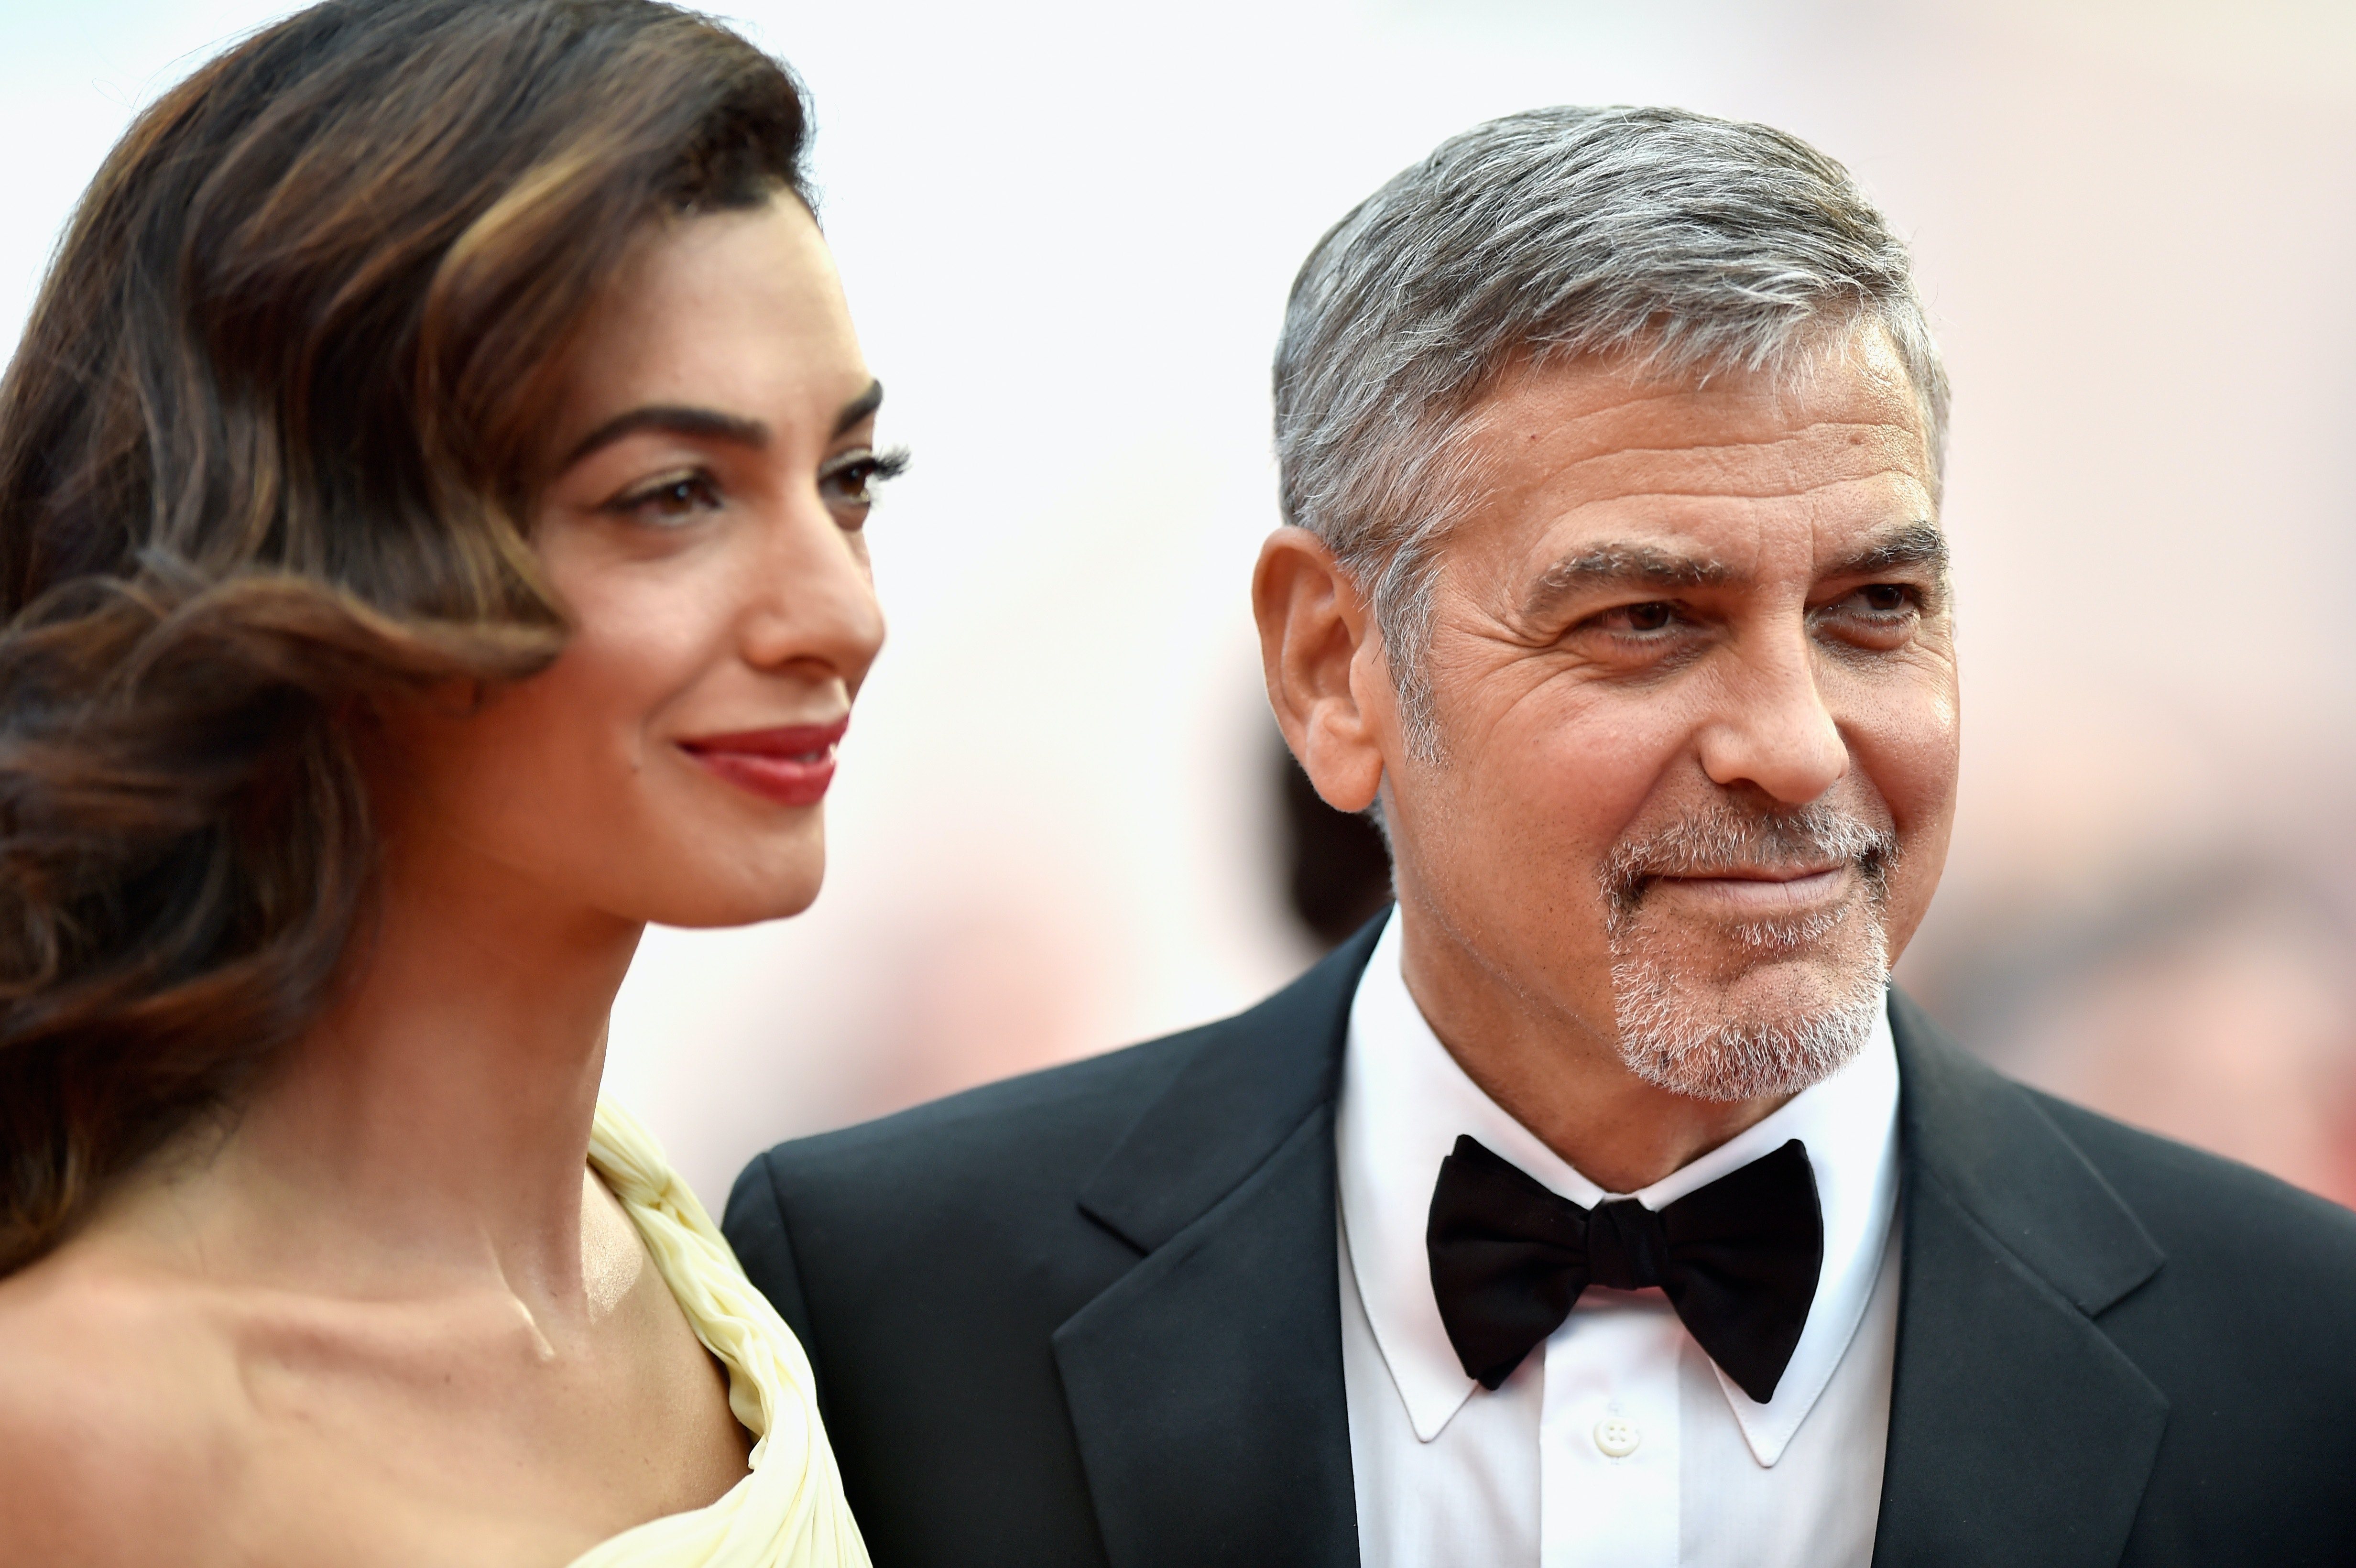 George Clooney: 'Fatherhood is going to be an adventure'